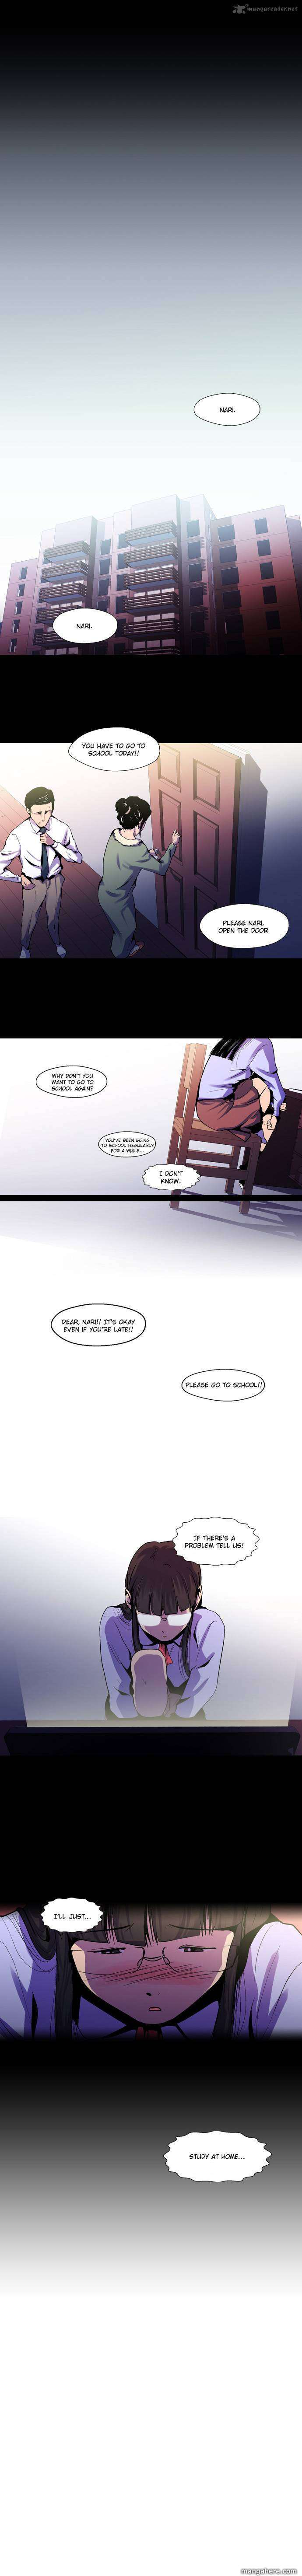 Dr. Frost 15 Page 1